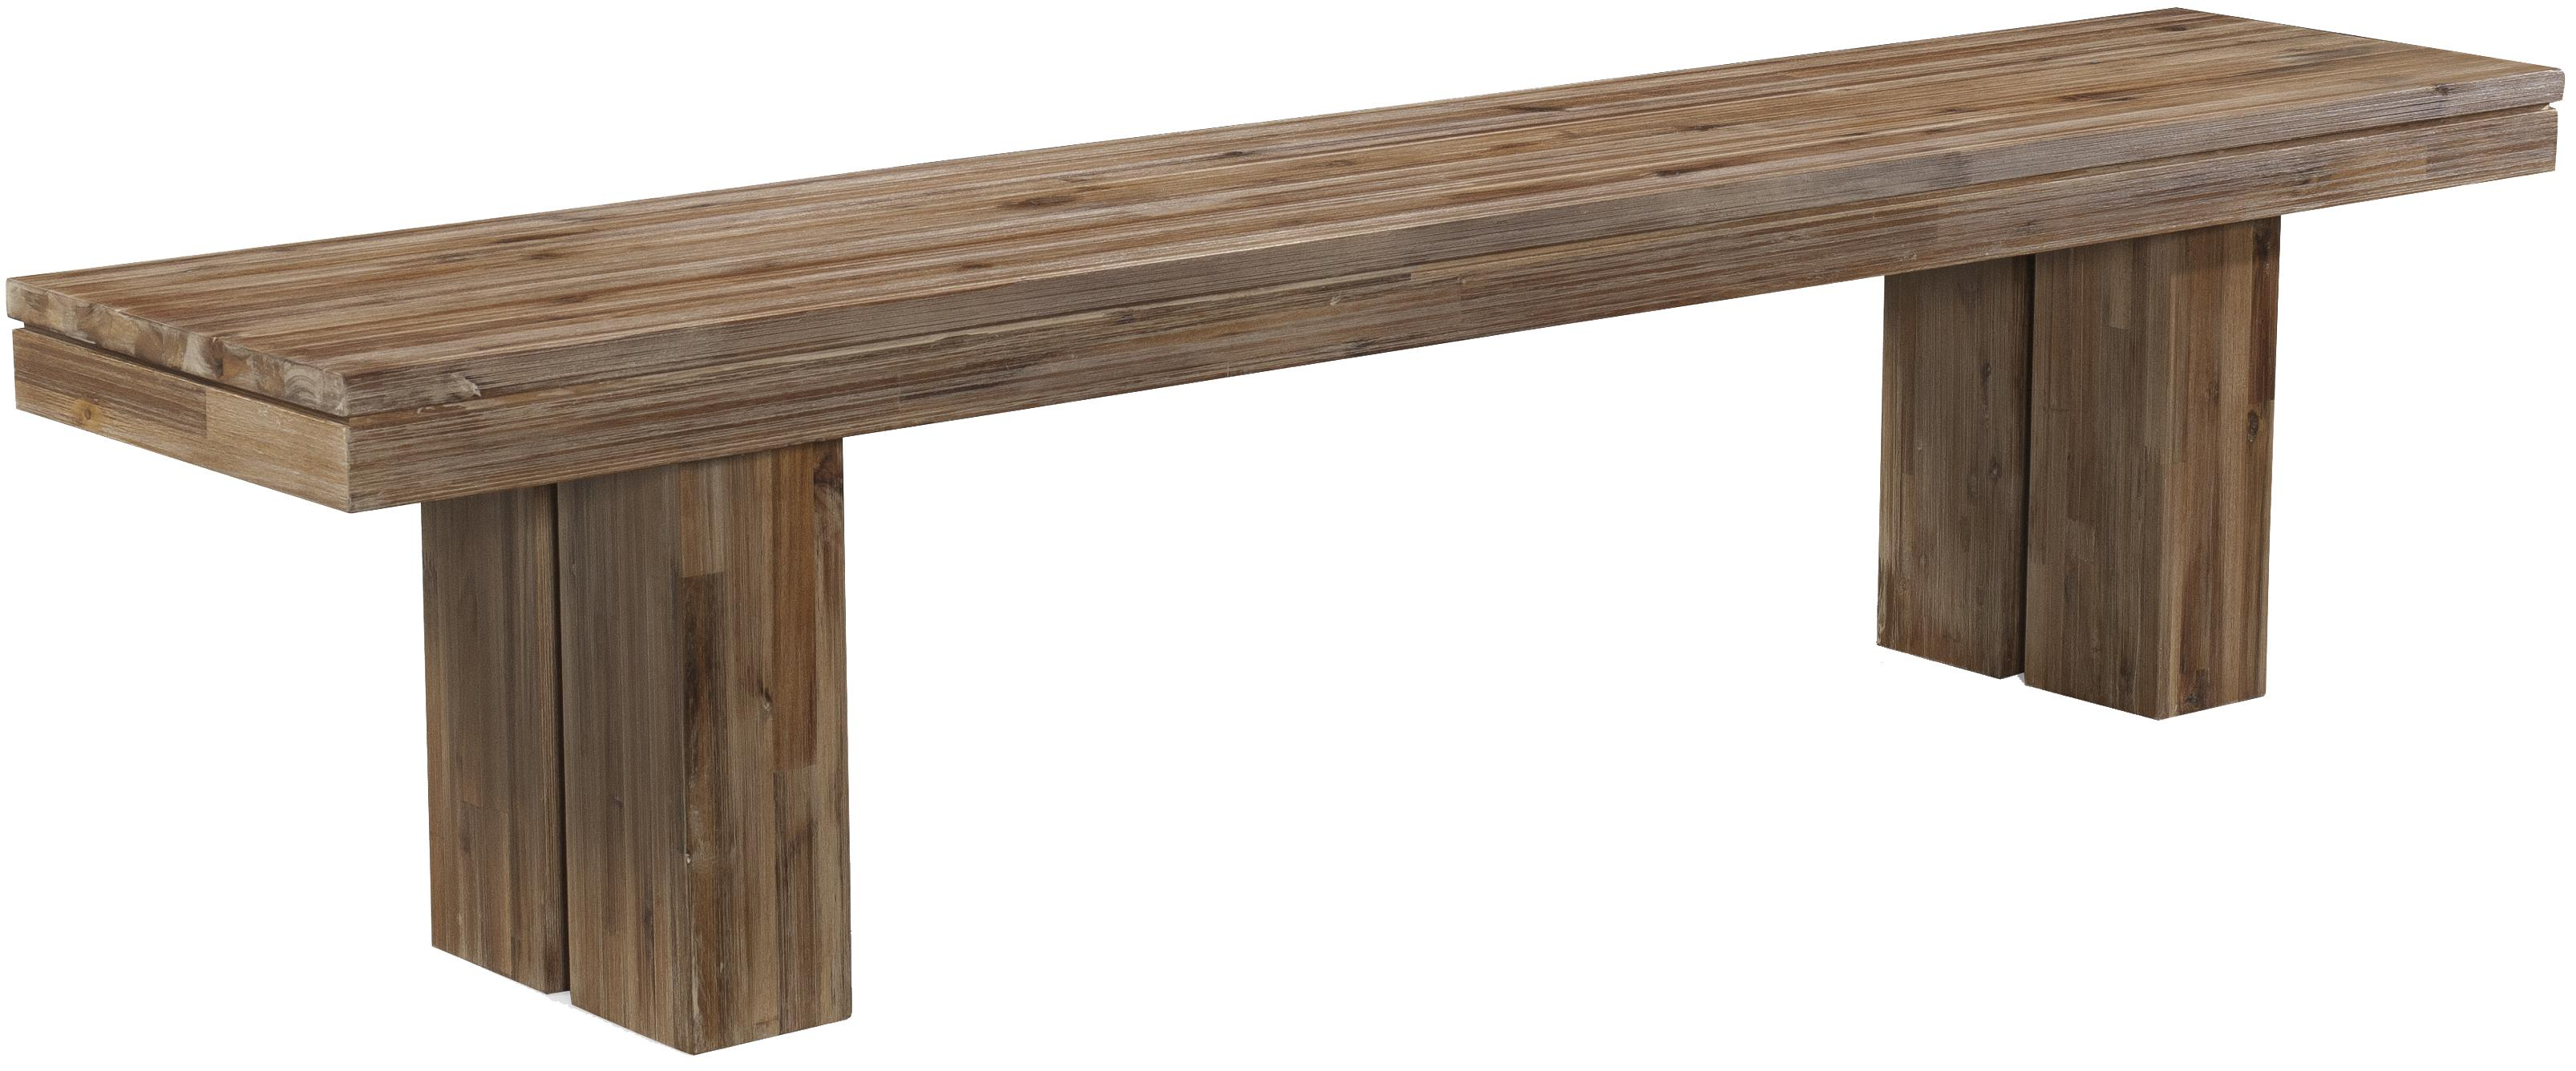 Acacia Wood Modern Rustic Dining Bench With Rectangular Leg Base By Cresent Fine Furniture